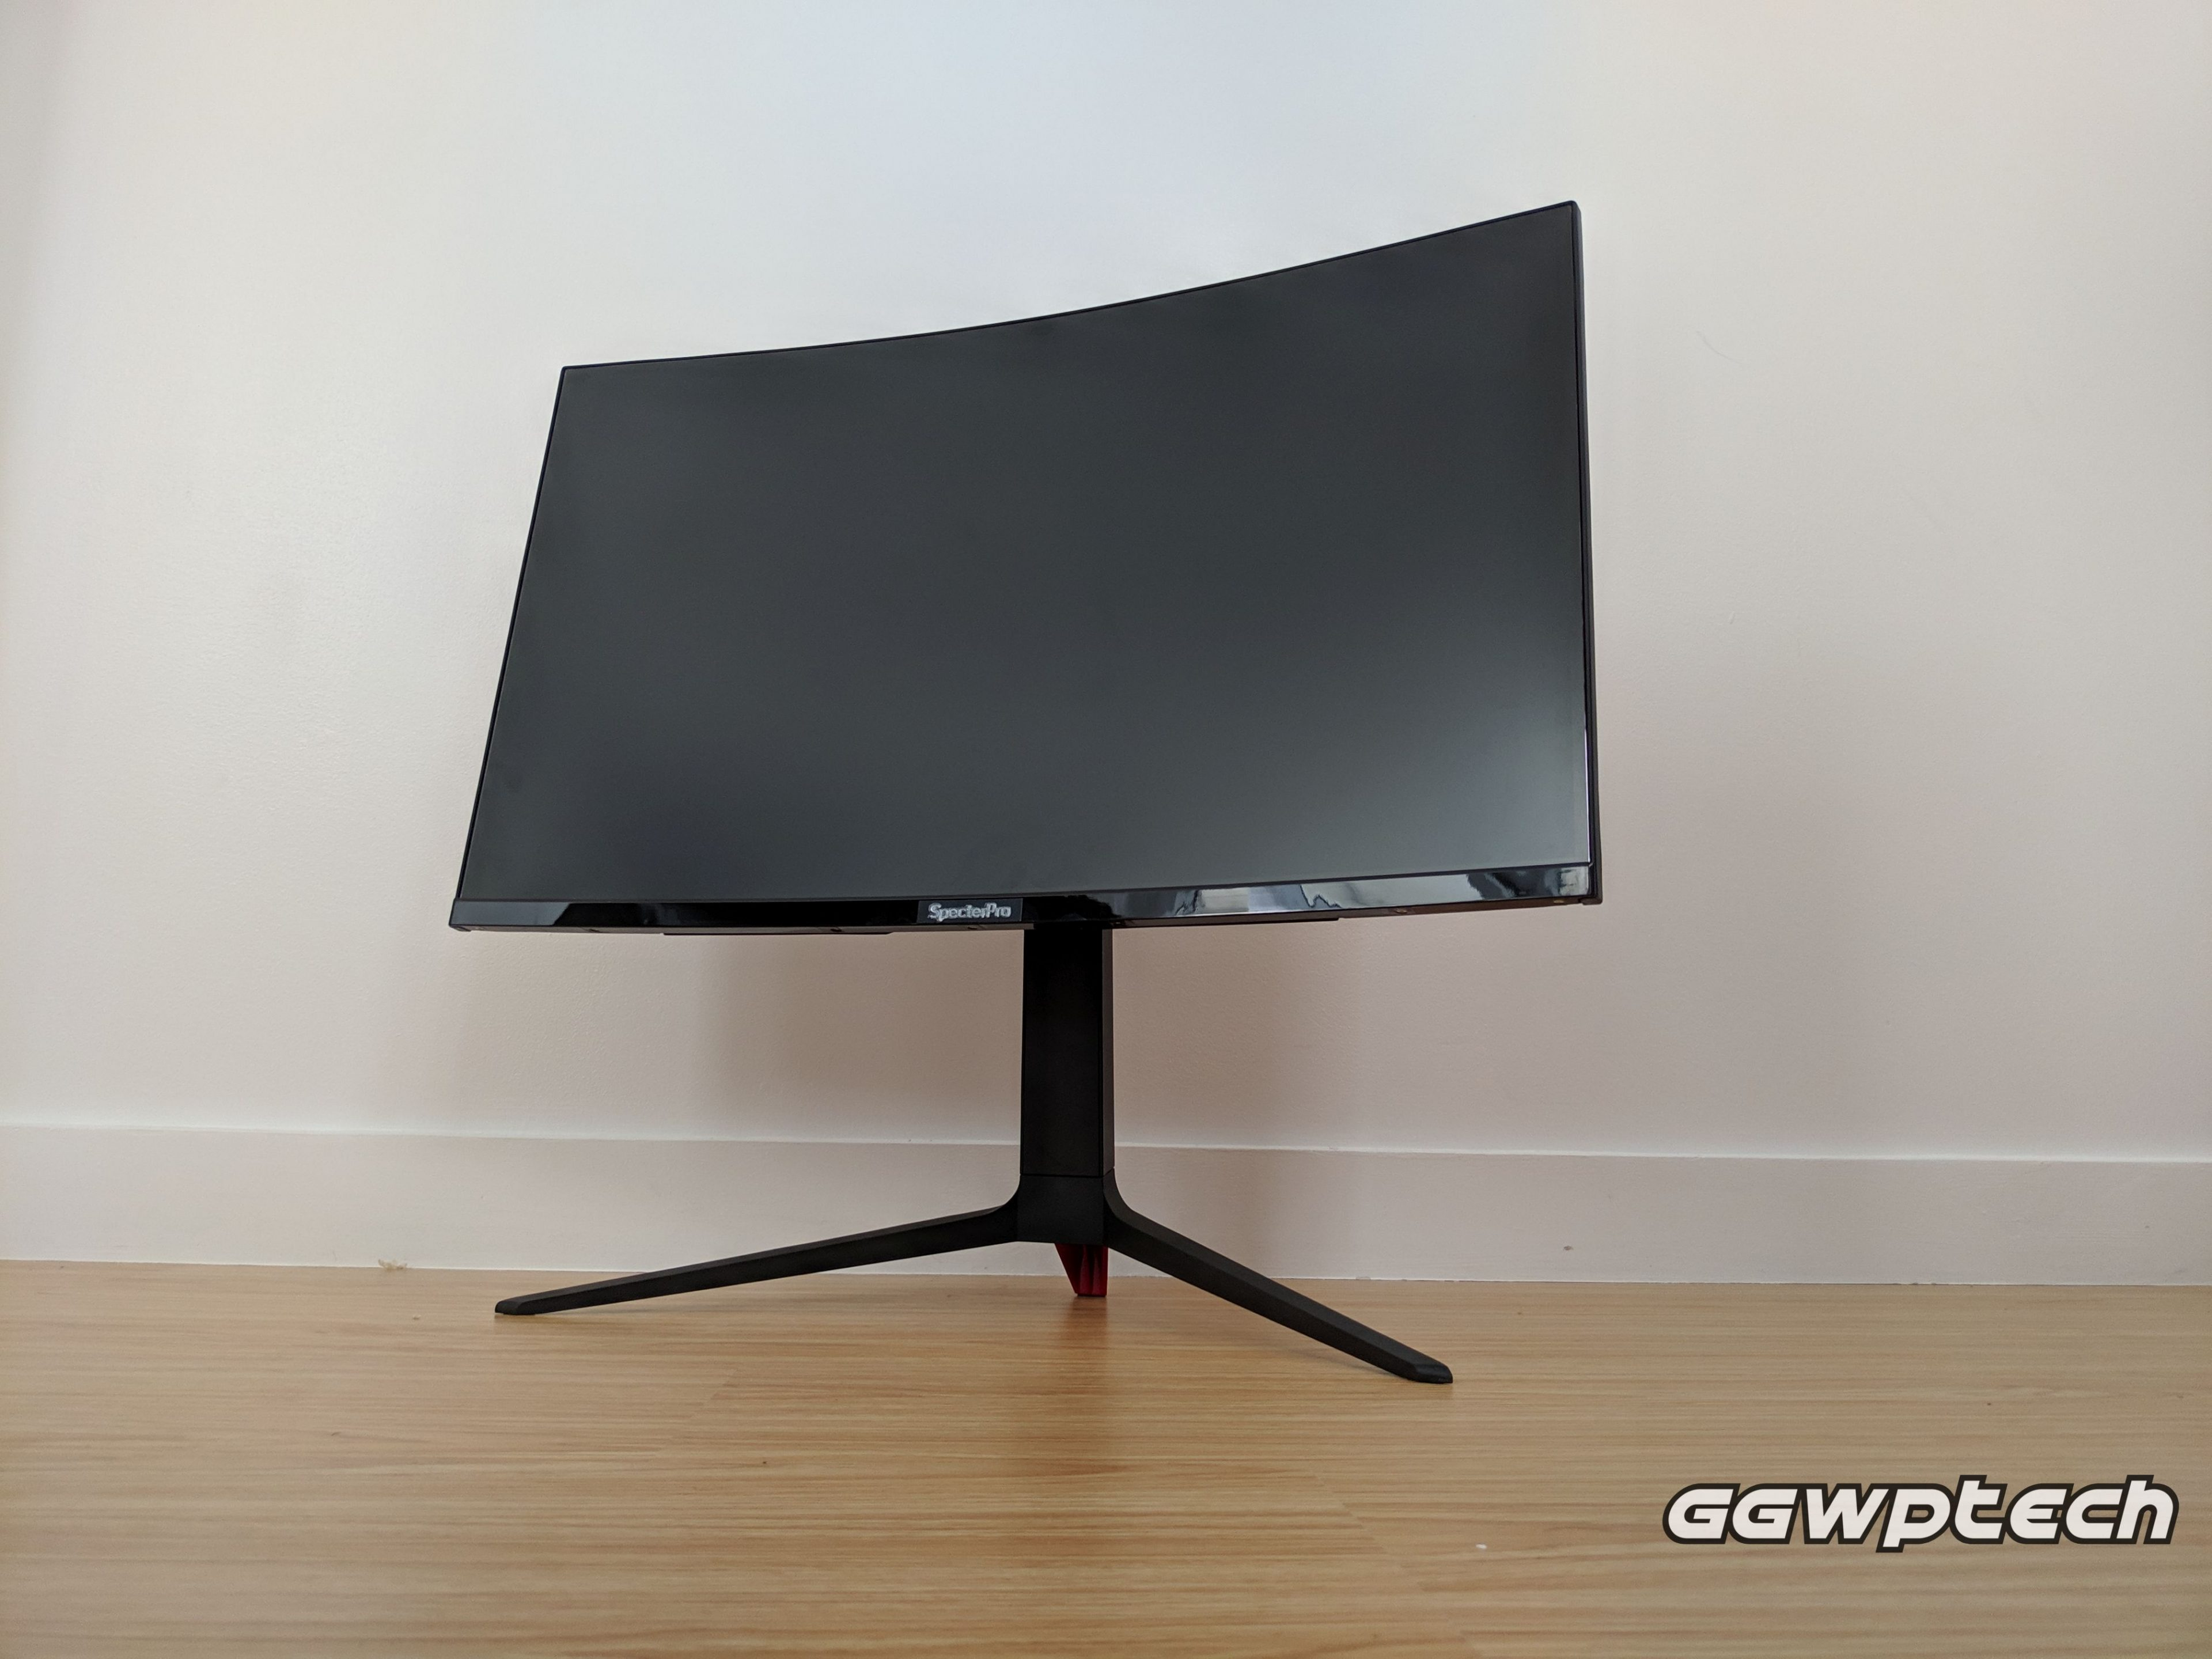 REVIEW | SpecterPro XT27Q 165hz 2k Curved Monitor – 1440p Goodness Without the Pricetag